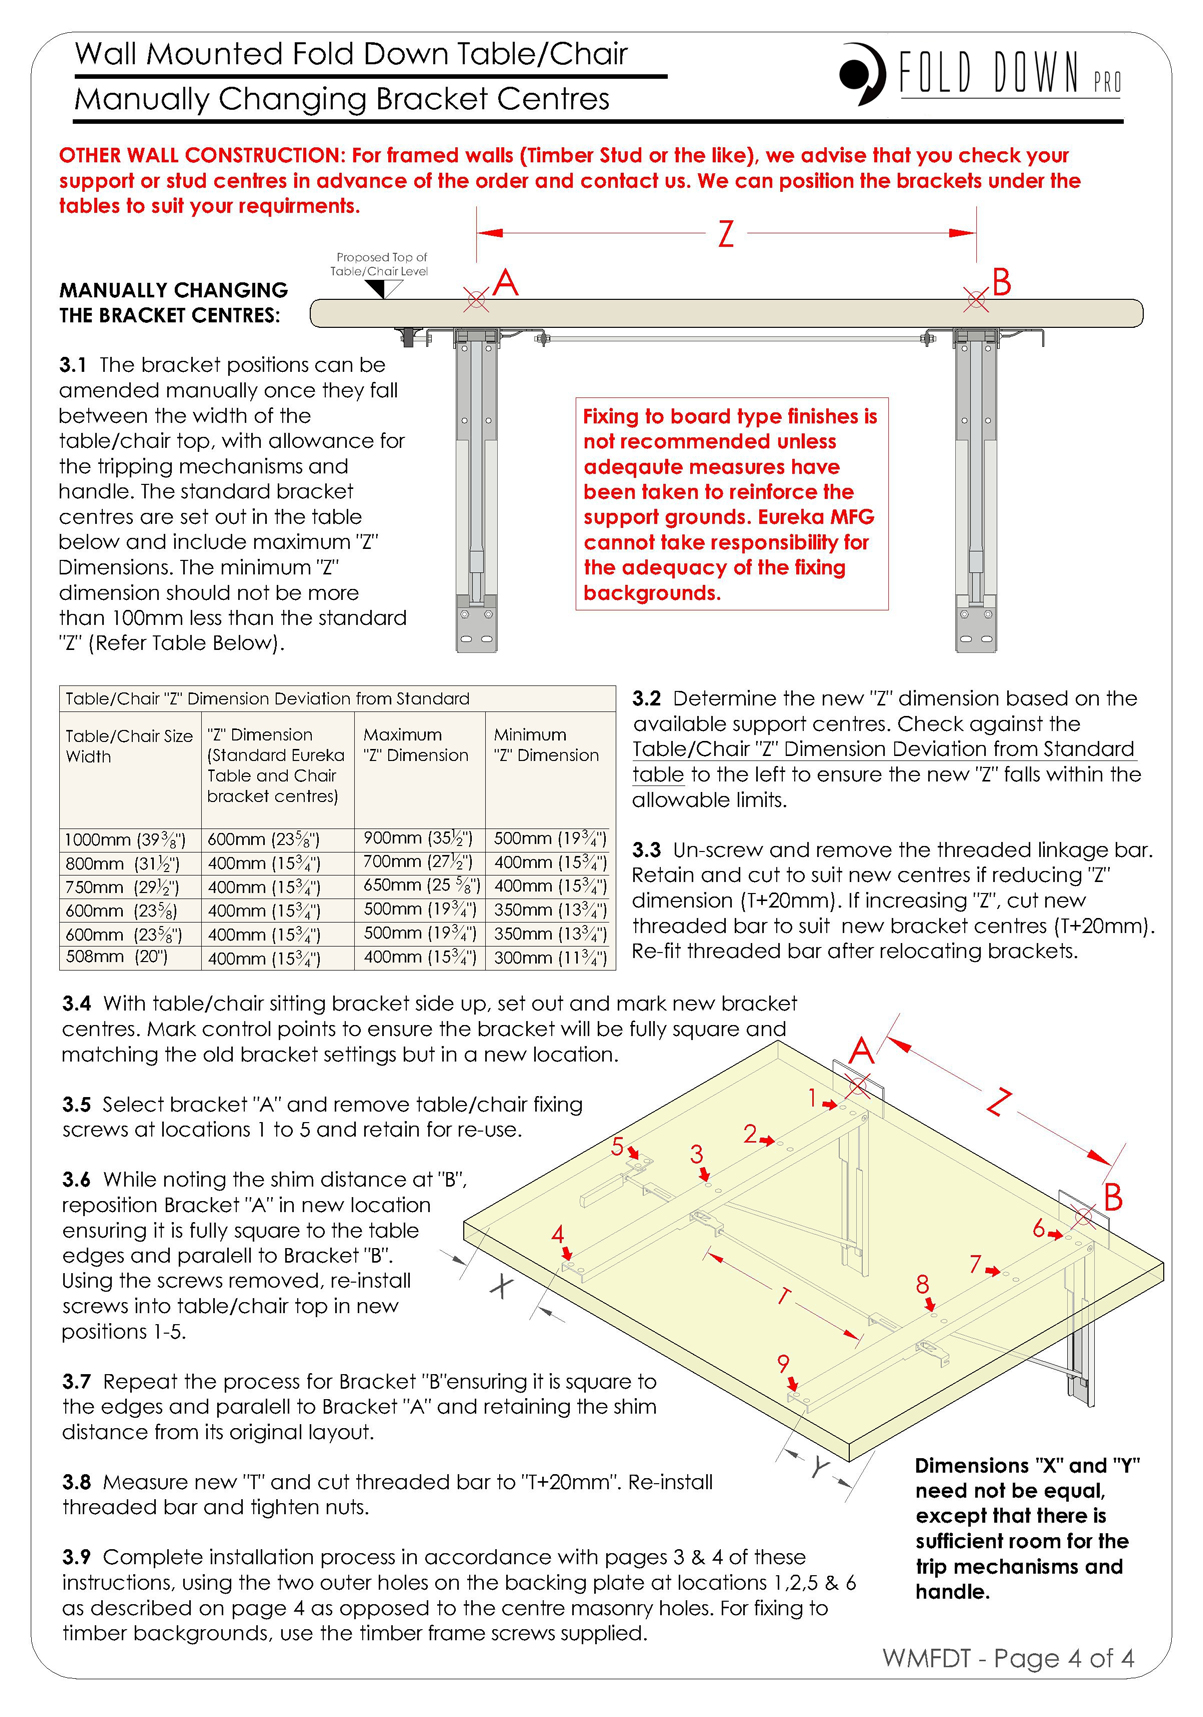 Wall Mounted Fold Down Table Chair Instructions Page 4